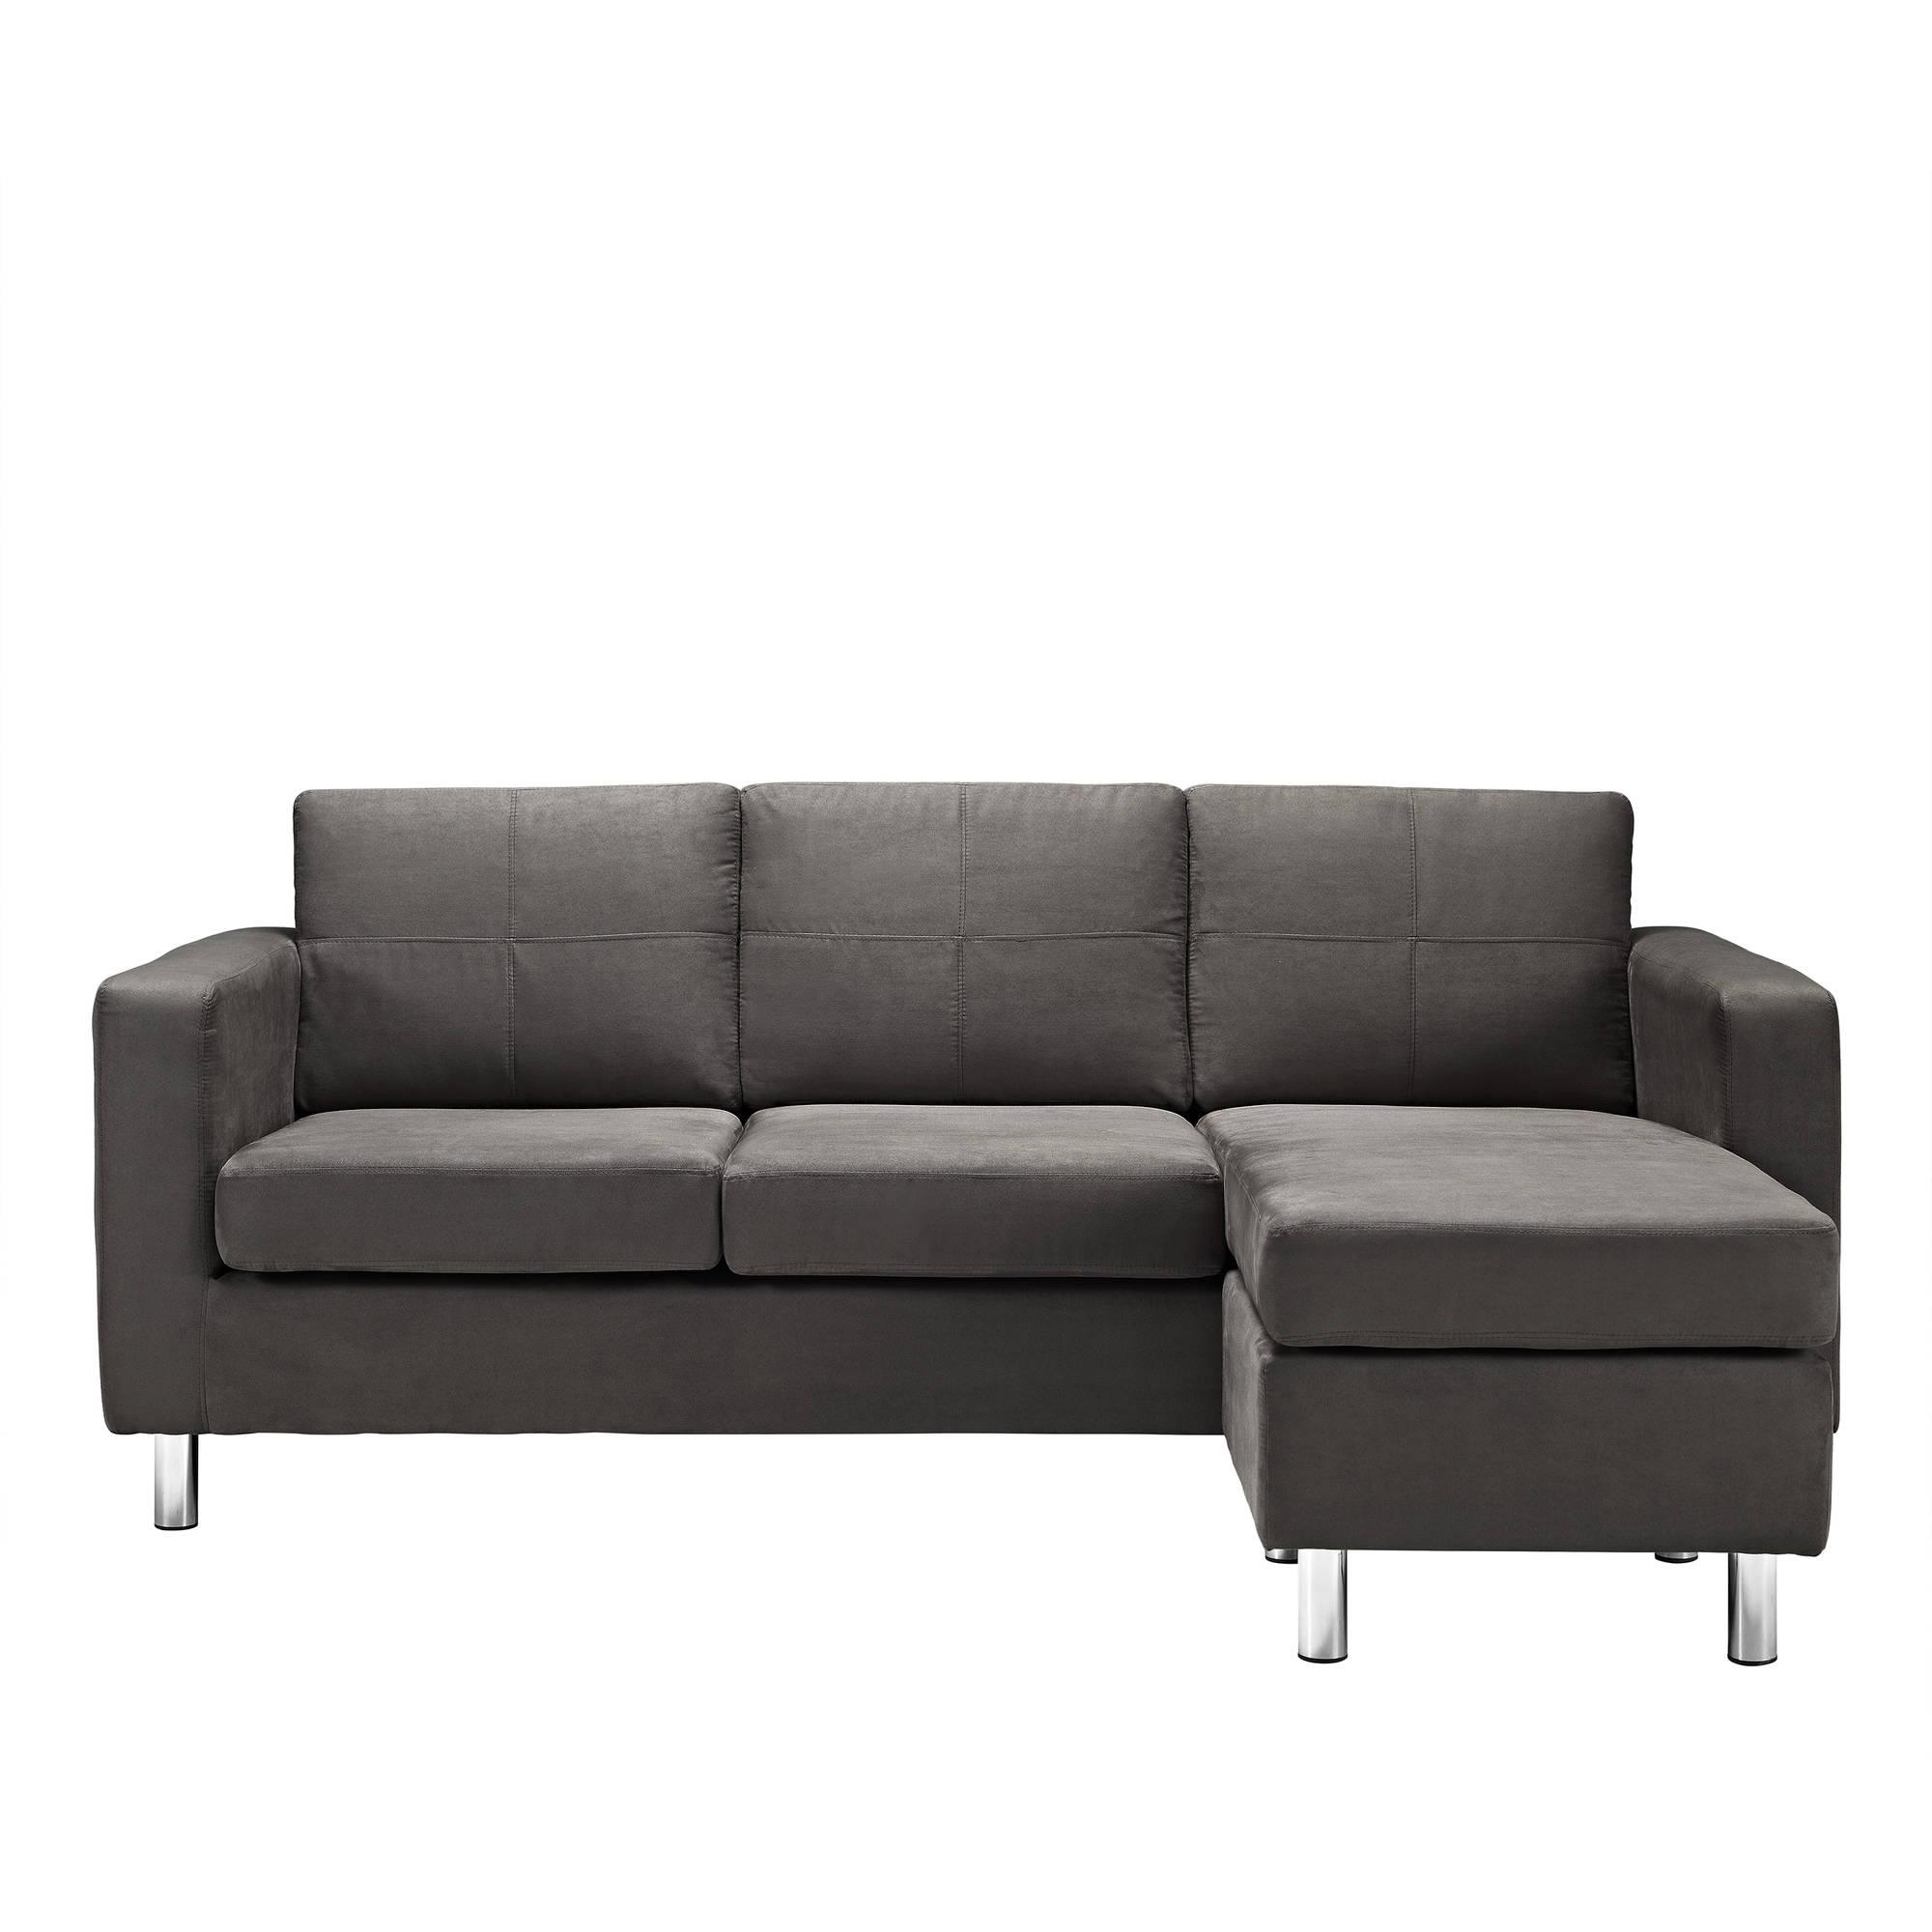 Dorel Living Small Spaces Configurable Sectional Sofa, Multiple With Sectional Small Spaces (Image 7 of 20)